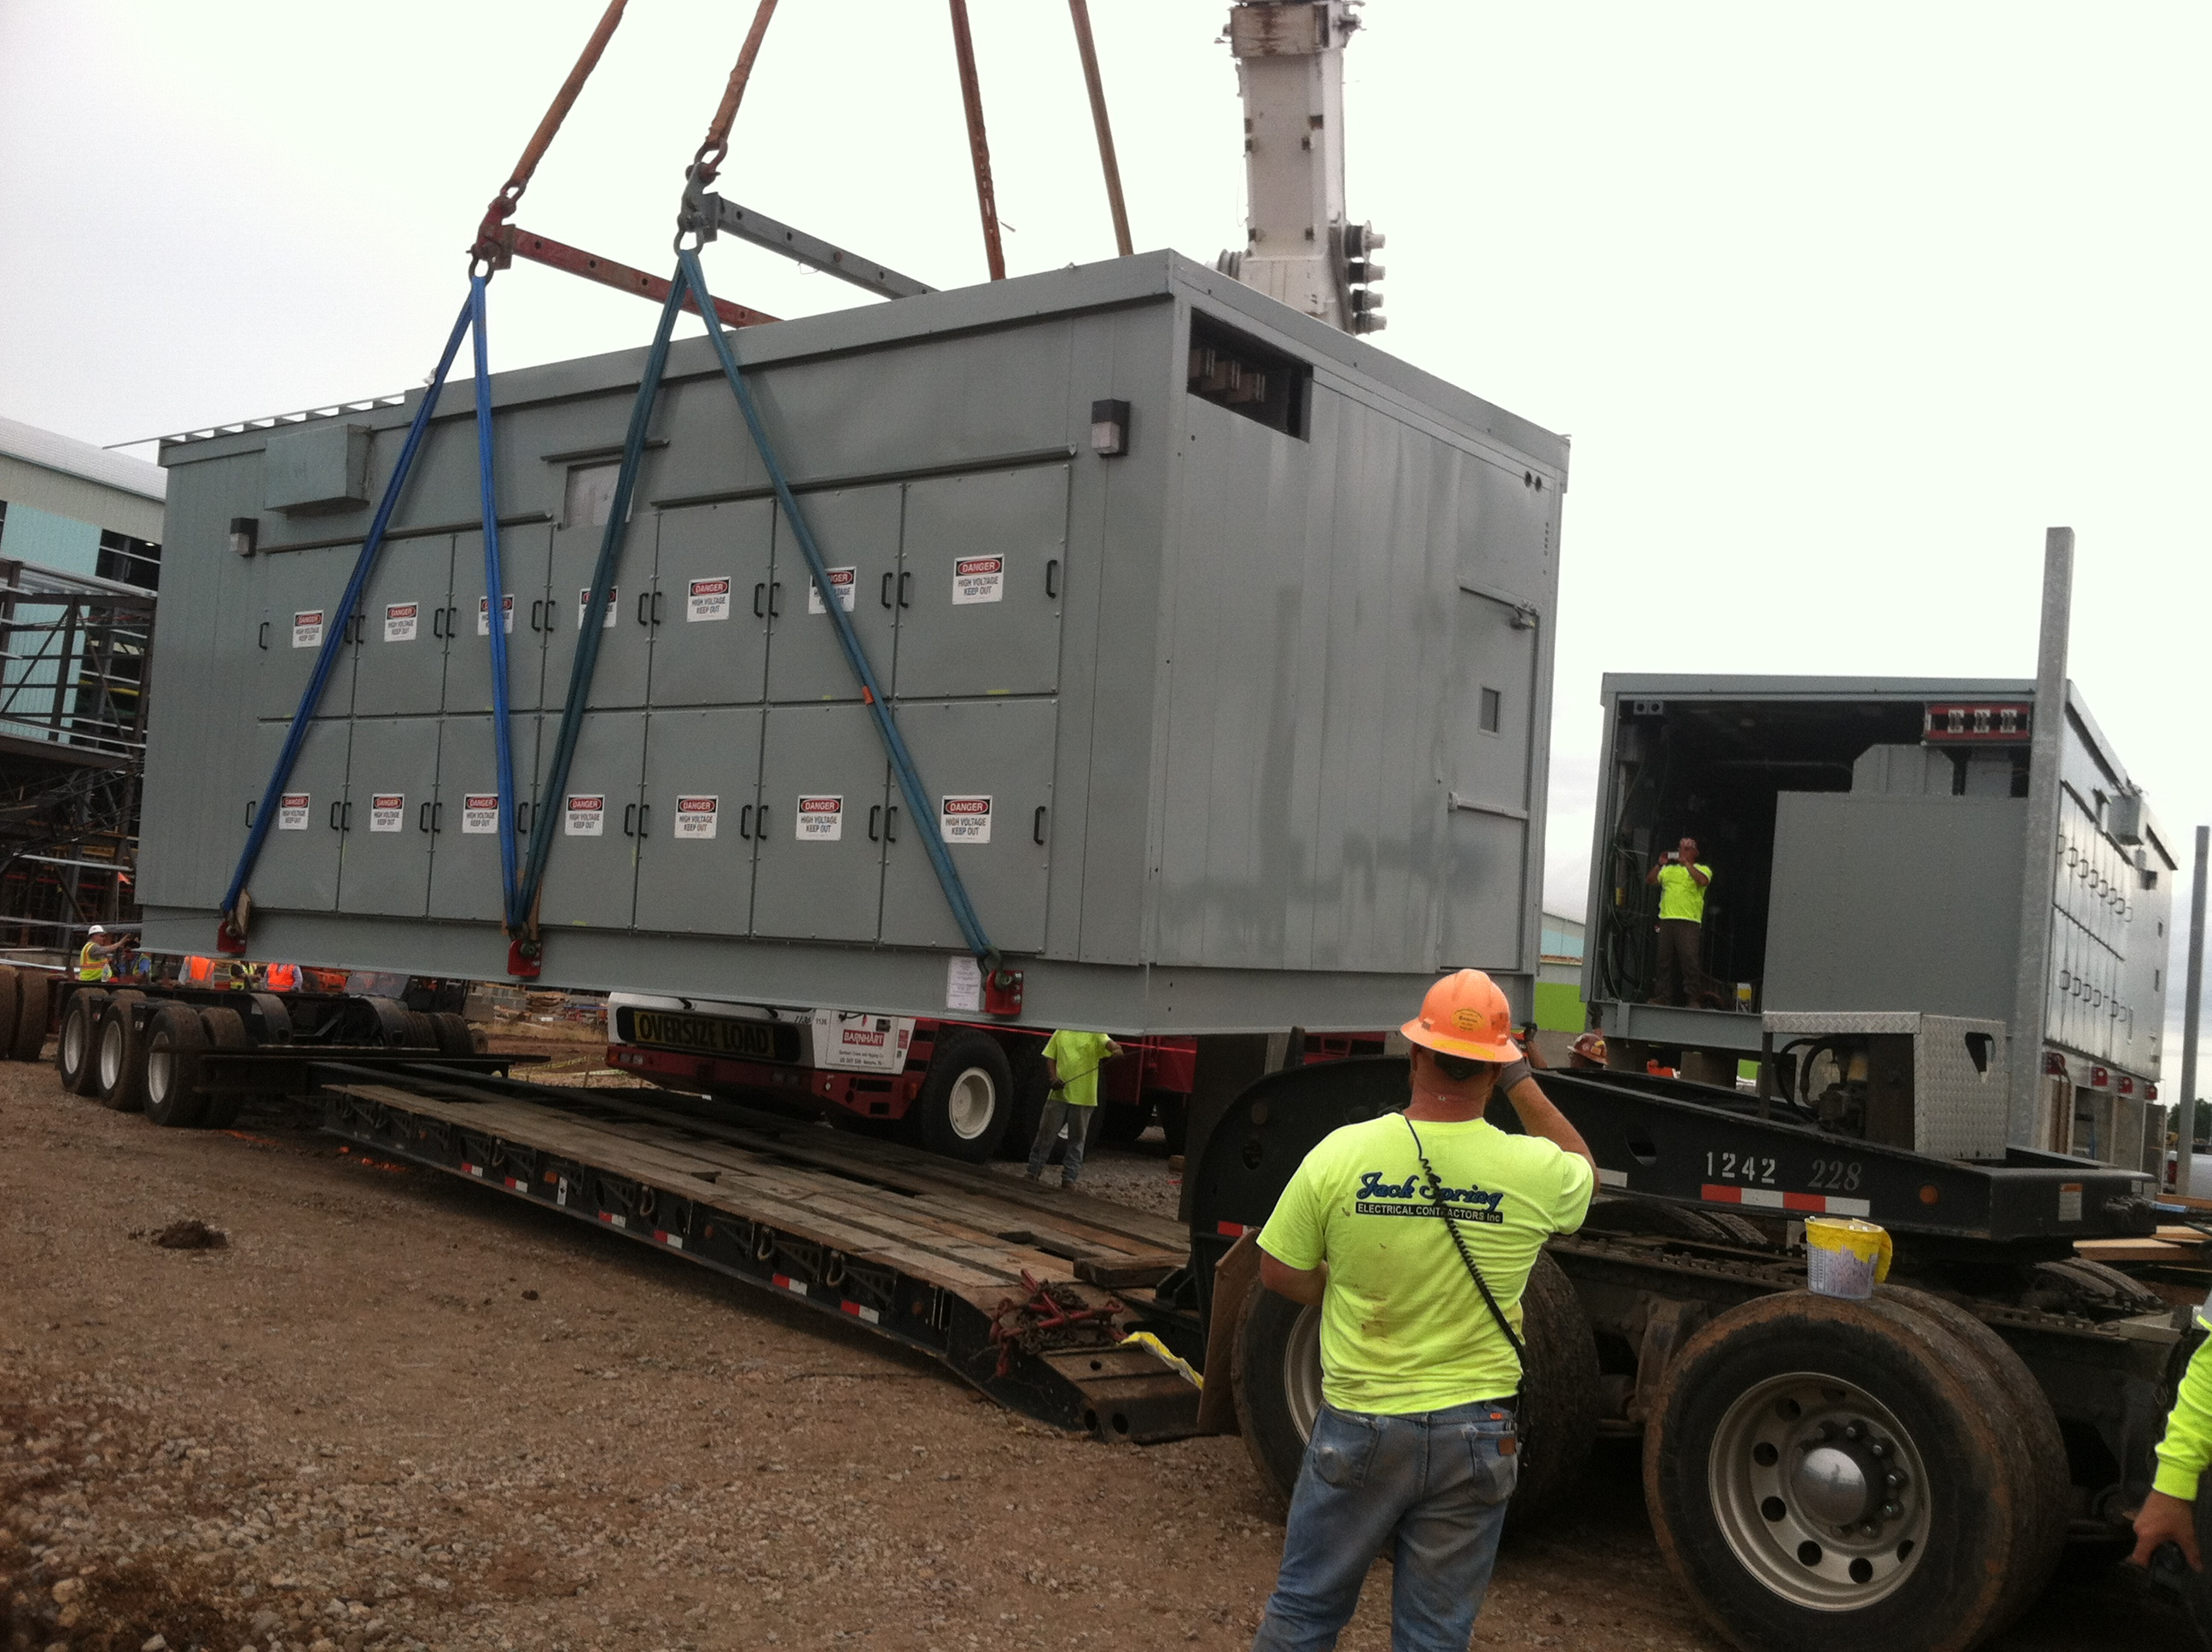 Installation of medium voltage switchgear